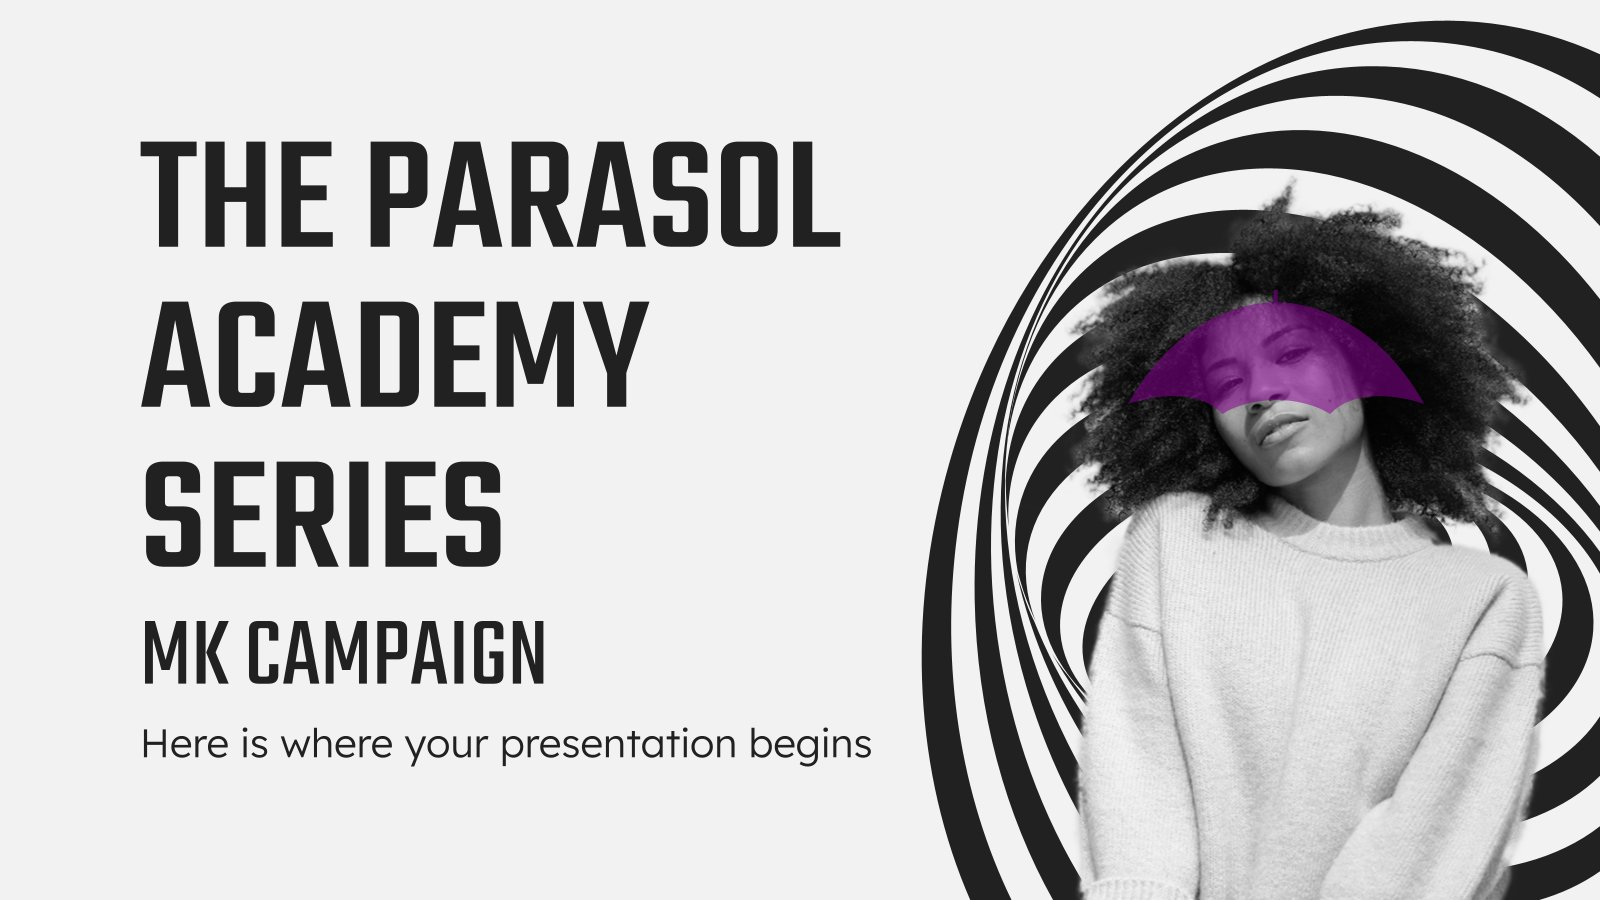 The Parasol Academy Series MK Campaign presentation template